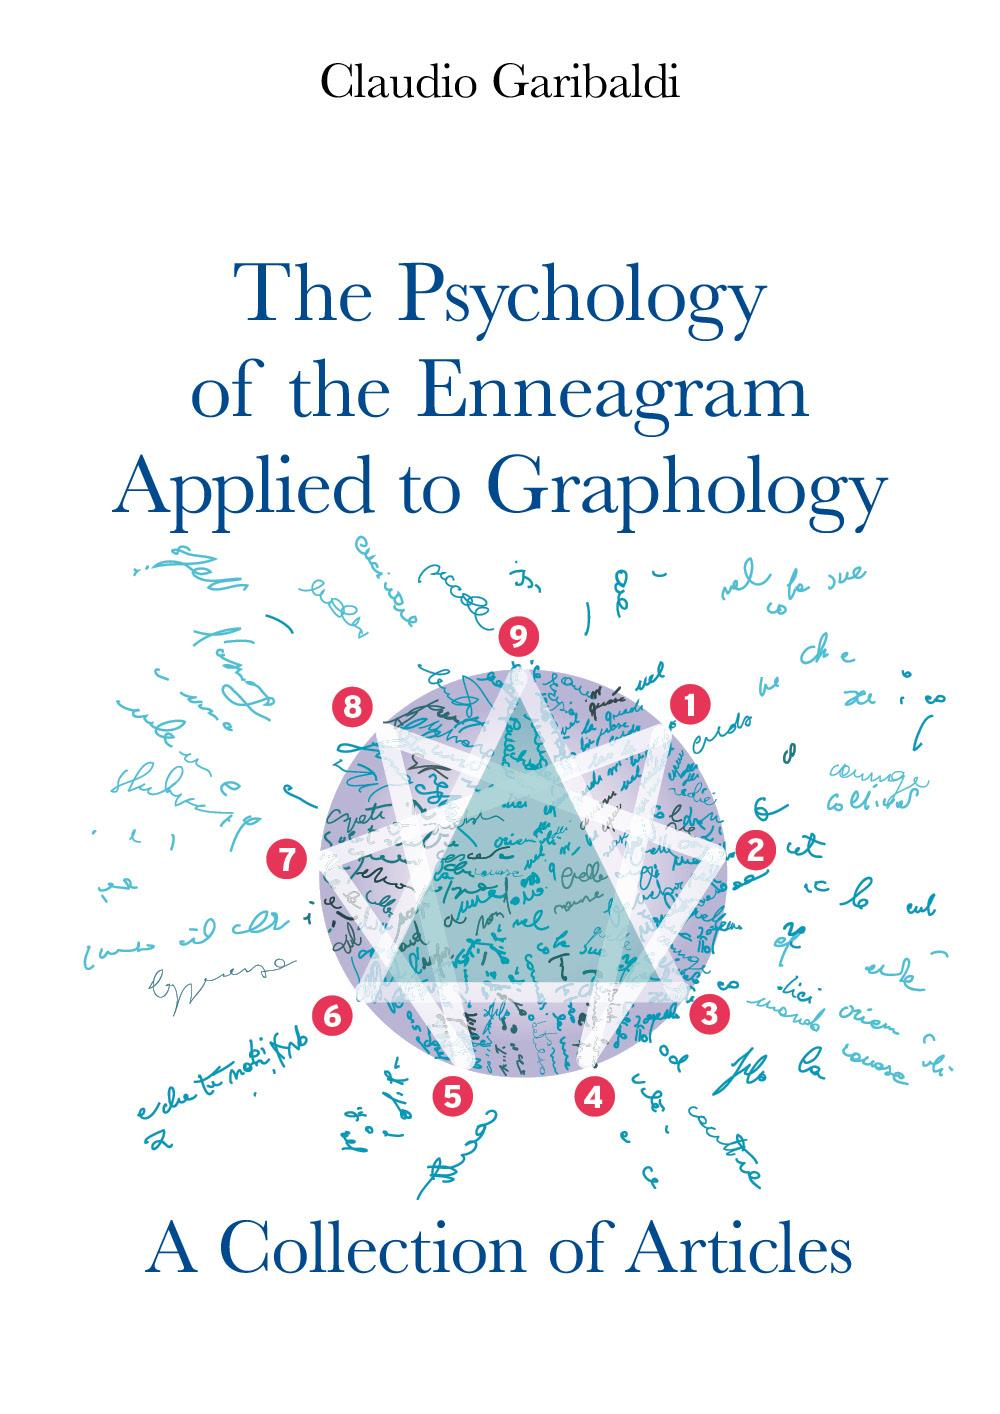 The Psychology of the Enneagram Applied to Graphology - A Collection of Articles - English version